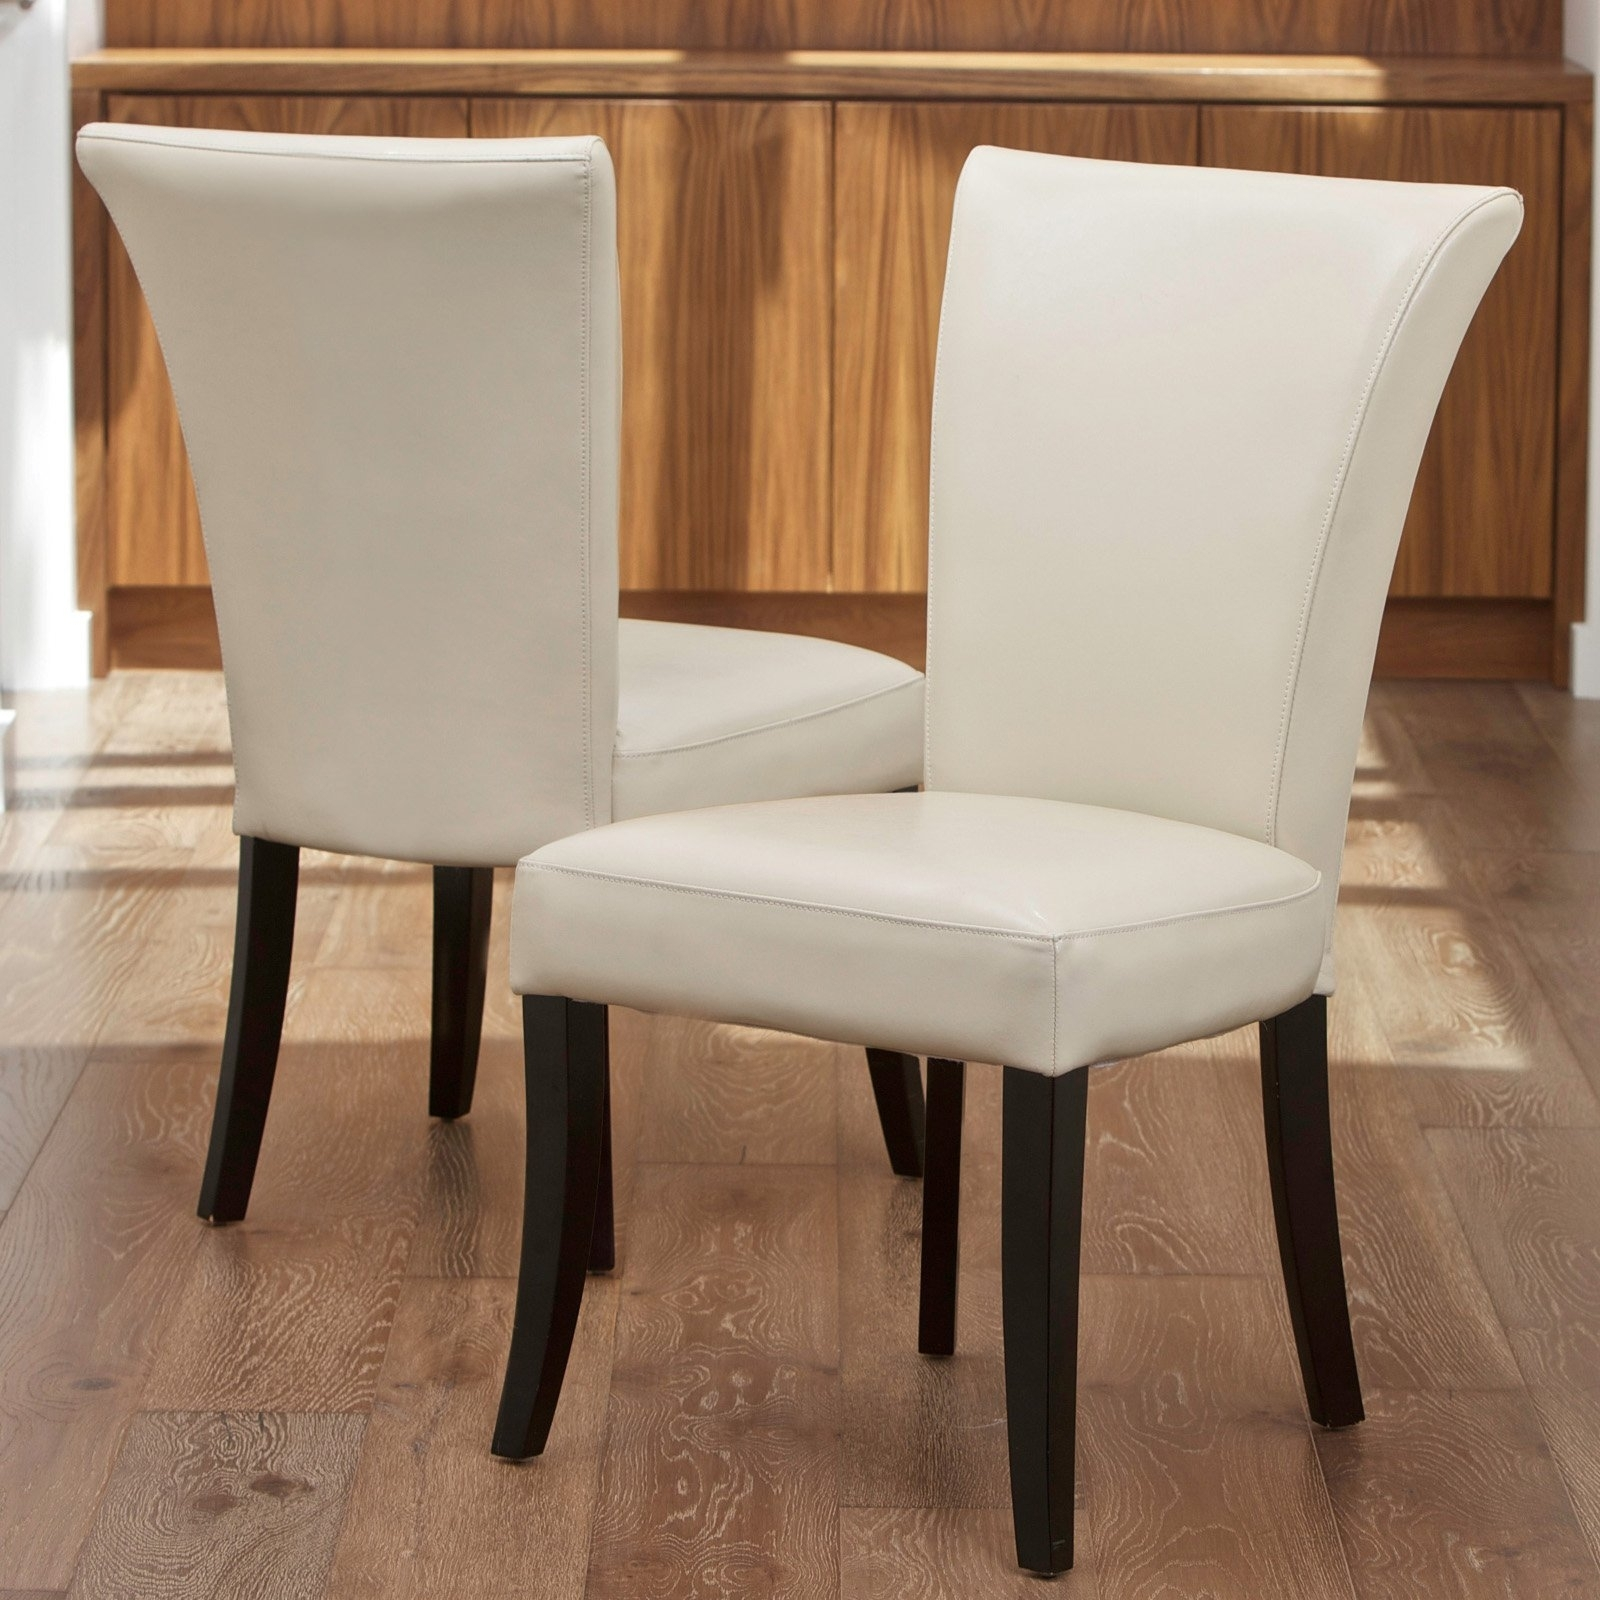 2018 Ivory Leather Dining Chairs inside Stanford Ivory Leather Dining Chairs - 2 Pack - Walmart